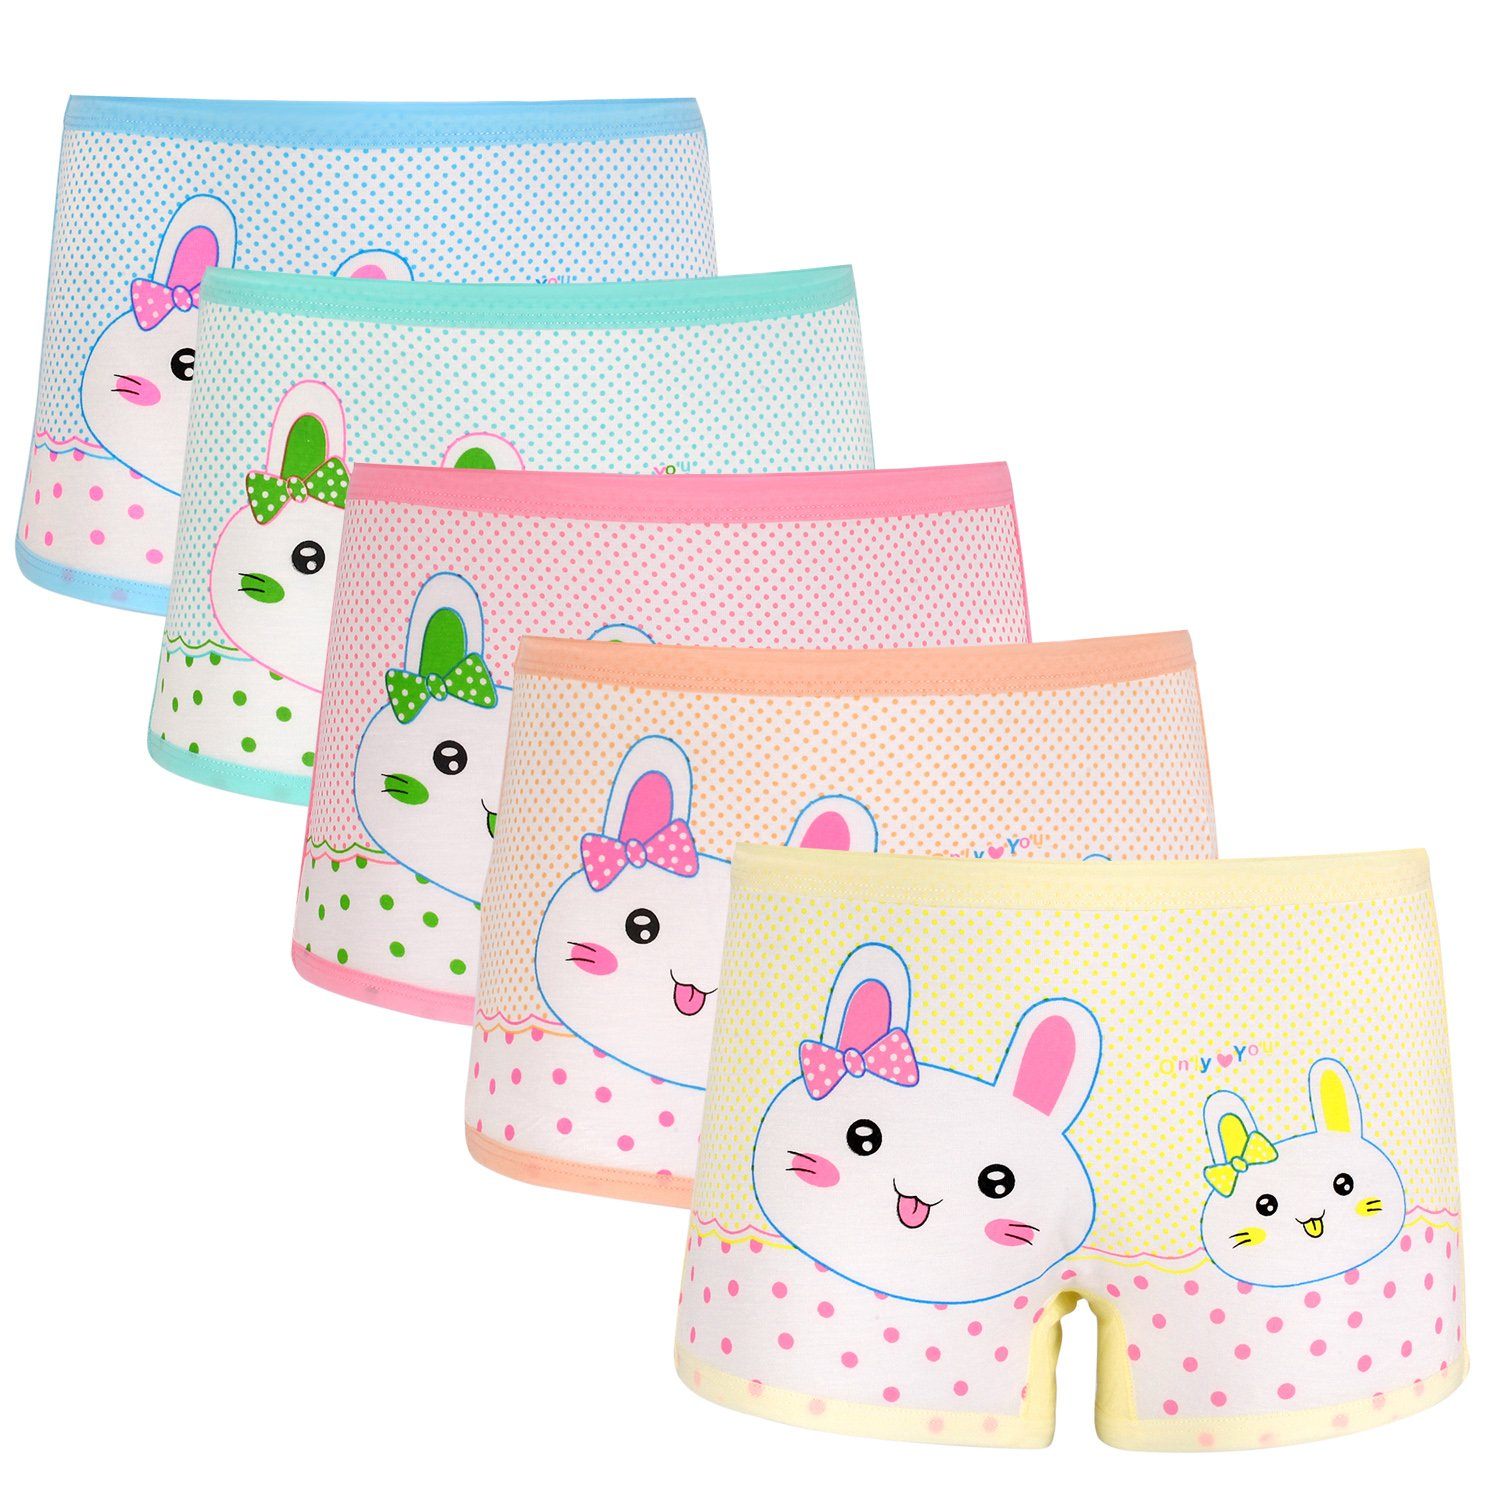 my case diy store 5 Pack Girls' Cute Cartoon Panties Toddler Rabbit Underwear Bunny Boyshort Hipster Kids Briefs 2-11 Years (Multicolor, L(3-5 Years)